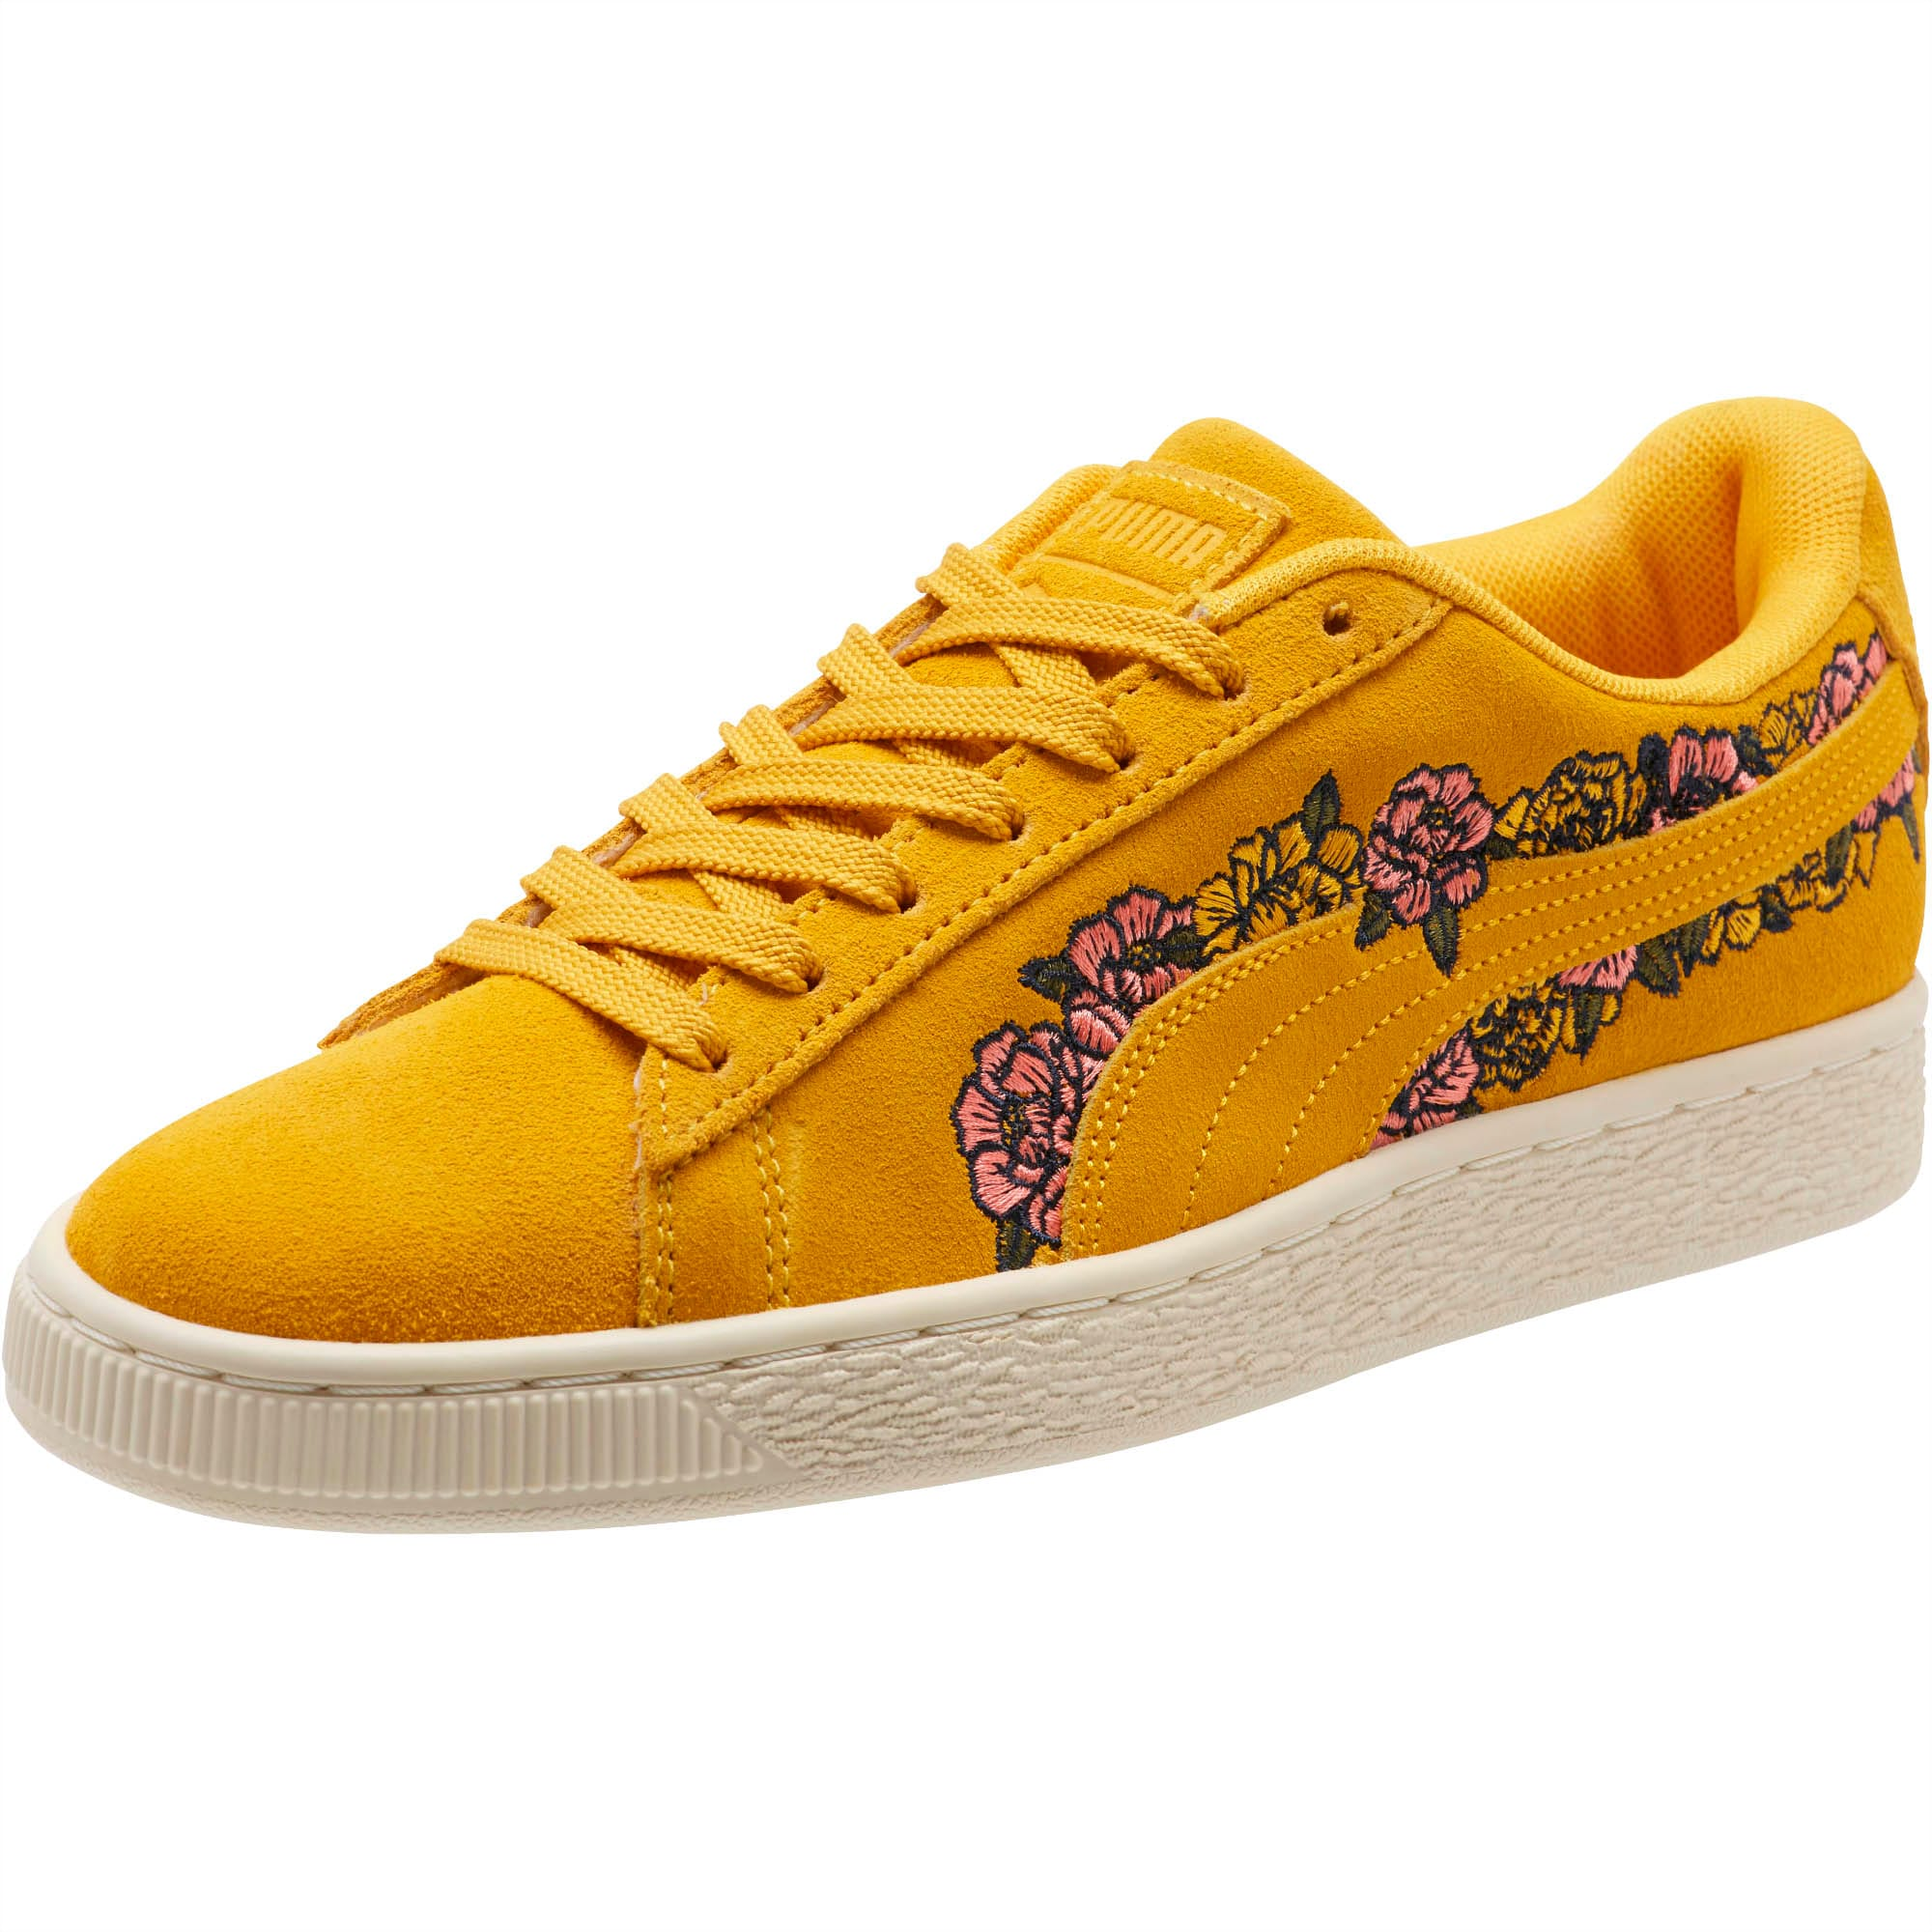 Suede Embroidered Floral Women's Sneakers